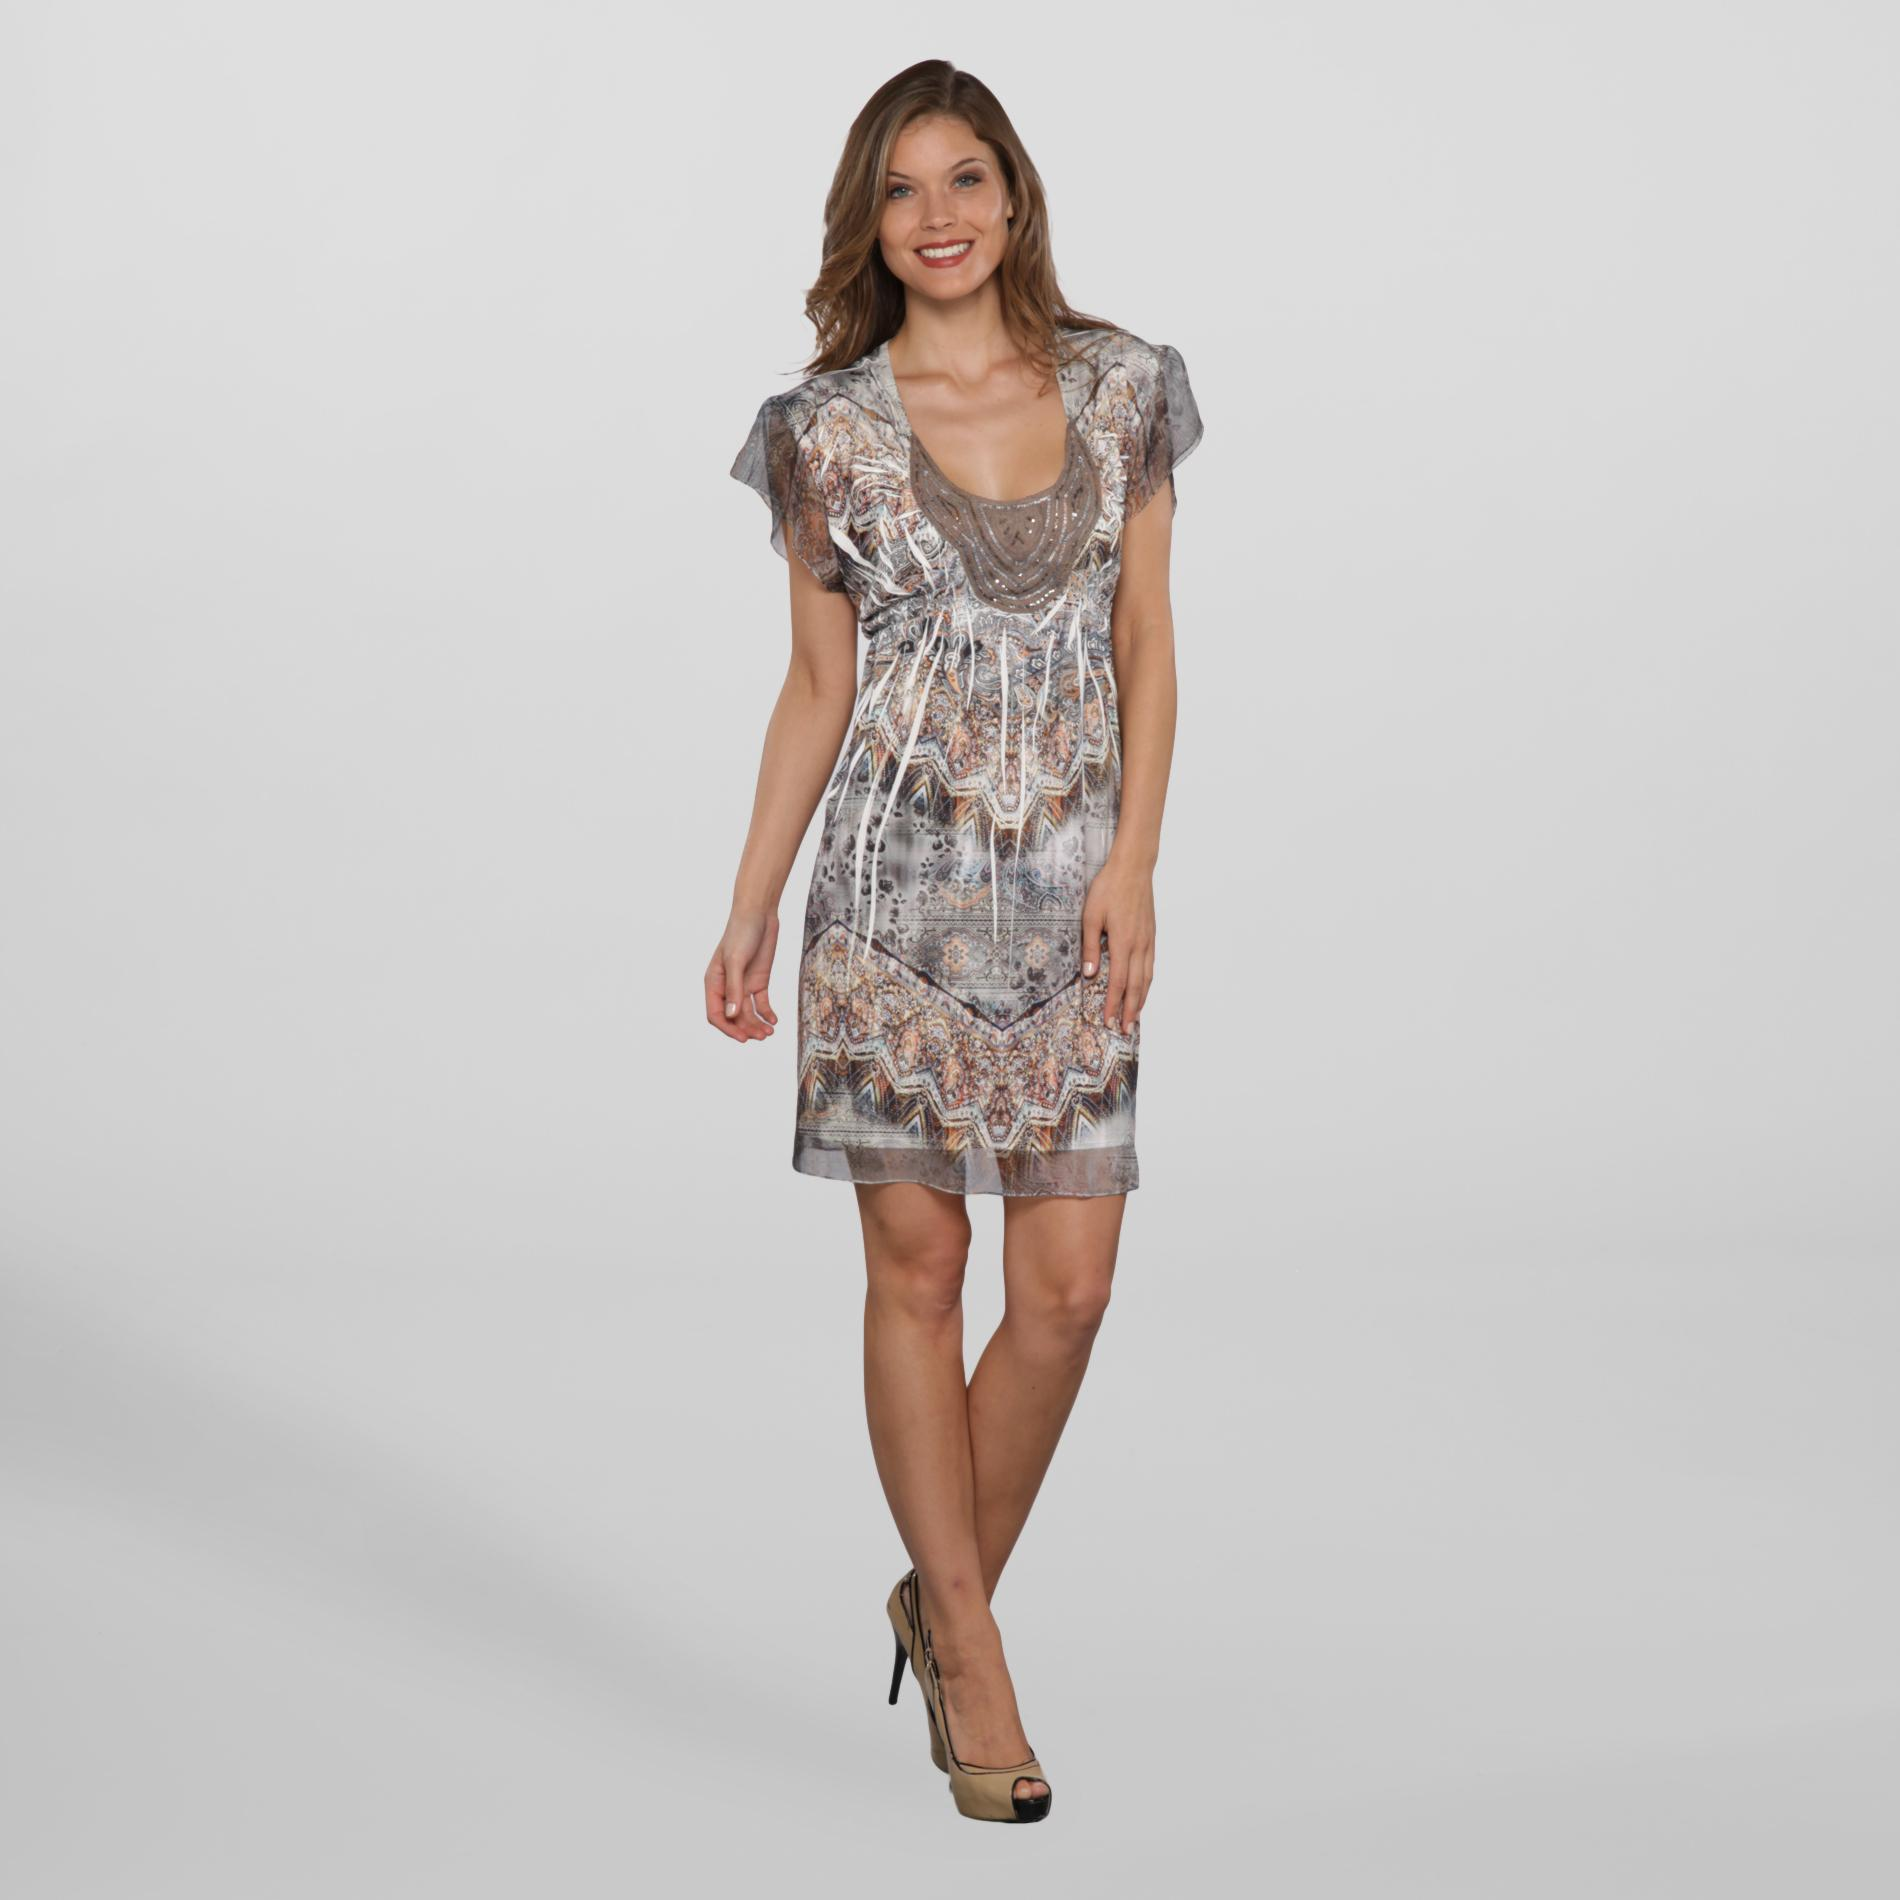 Women's Dress - Ikat Print at Sears.com